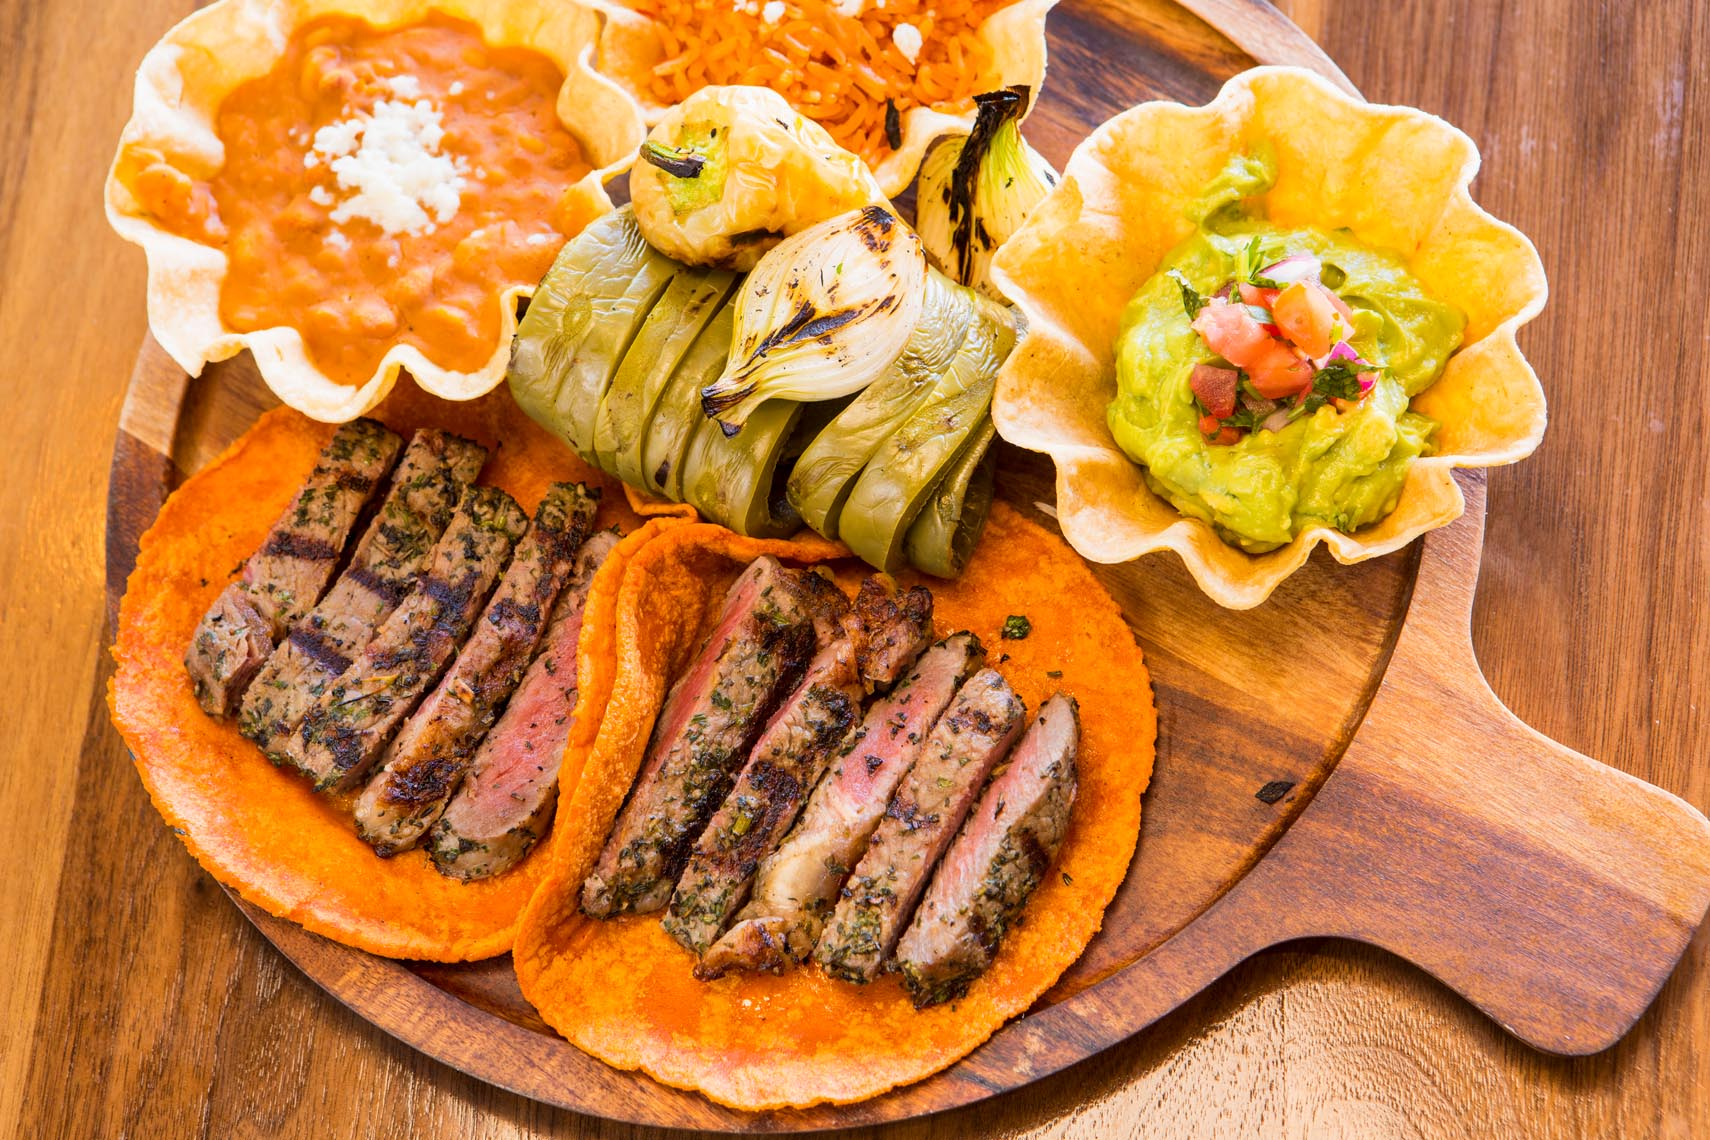 Food_Steak_Tacos